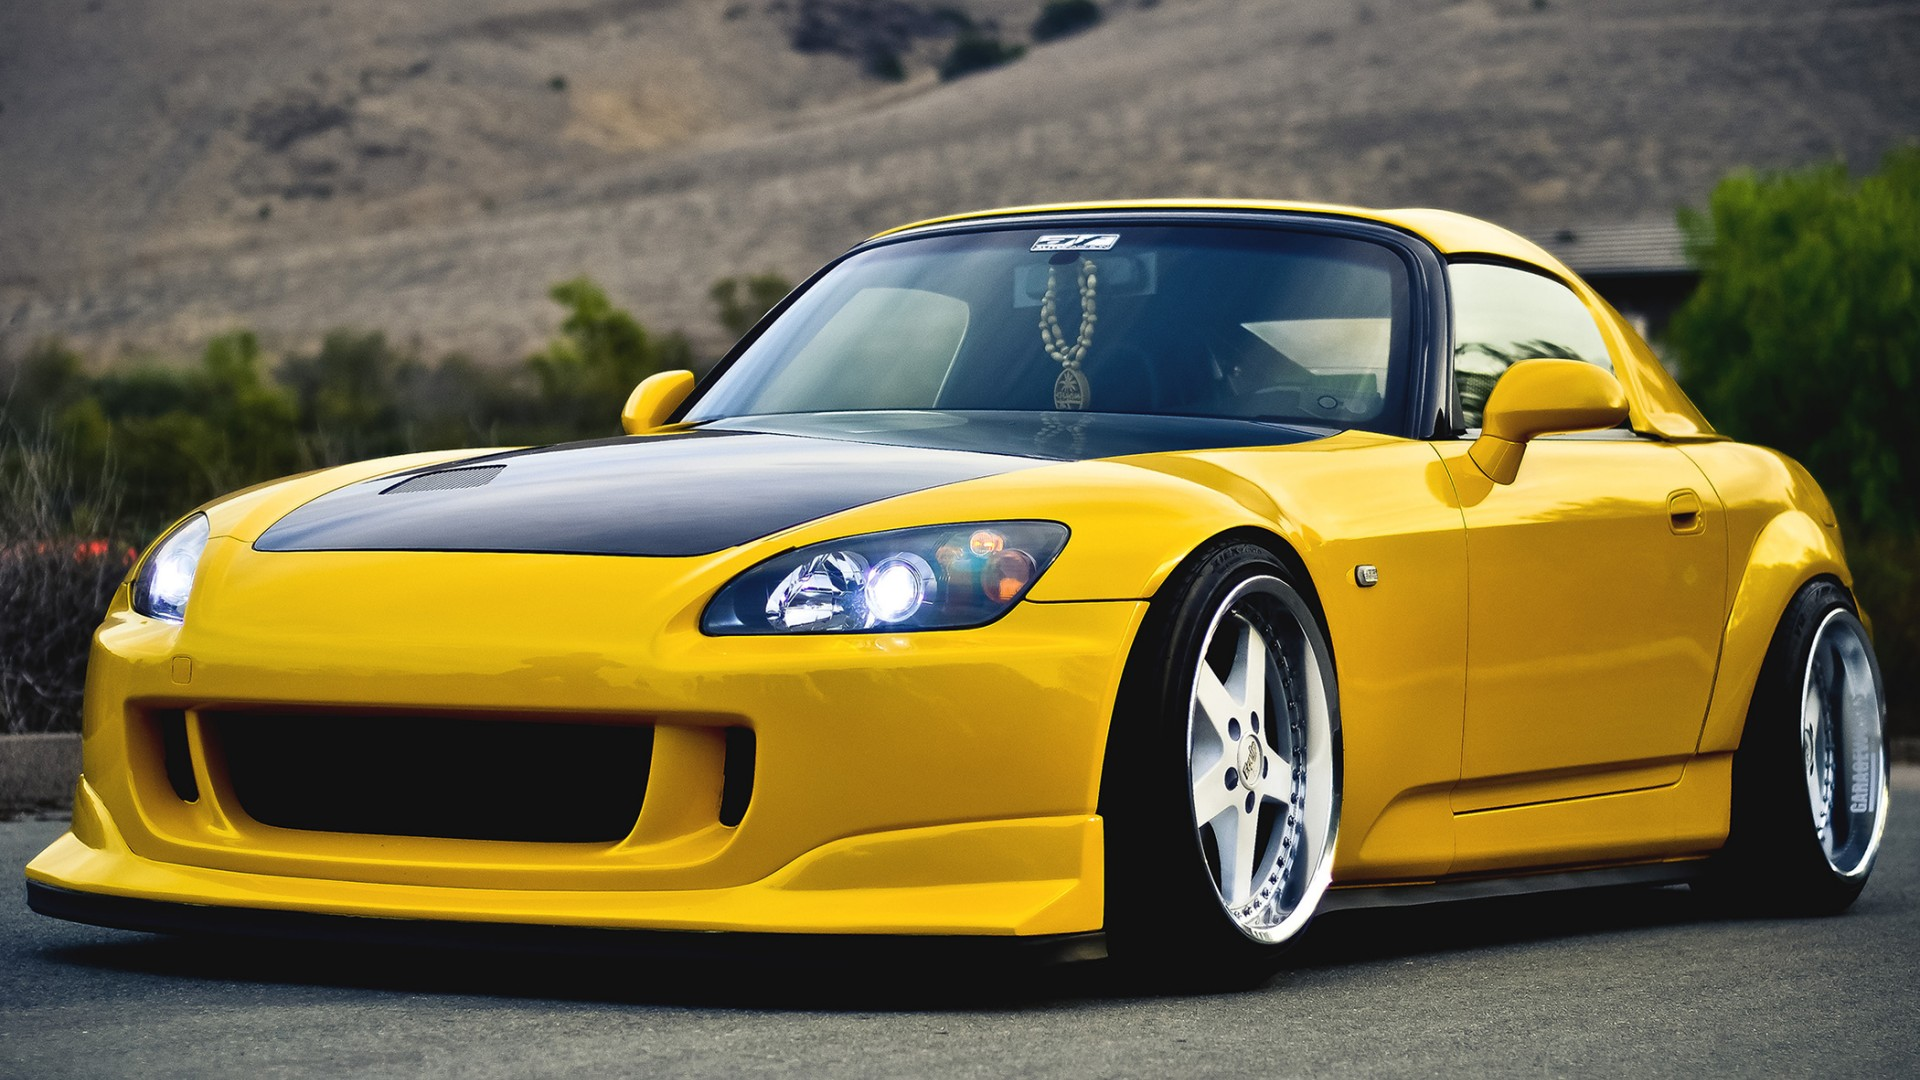 Honda S2000 Tuning Car Carros Usa